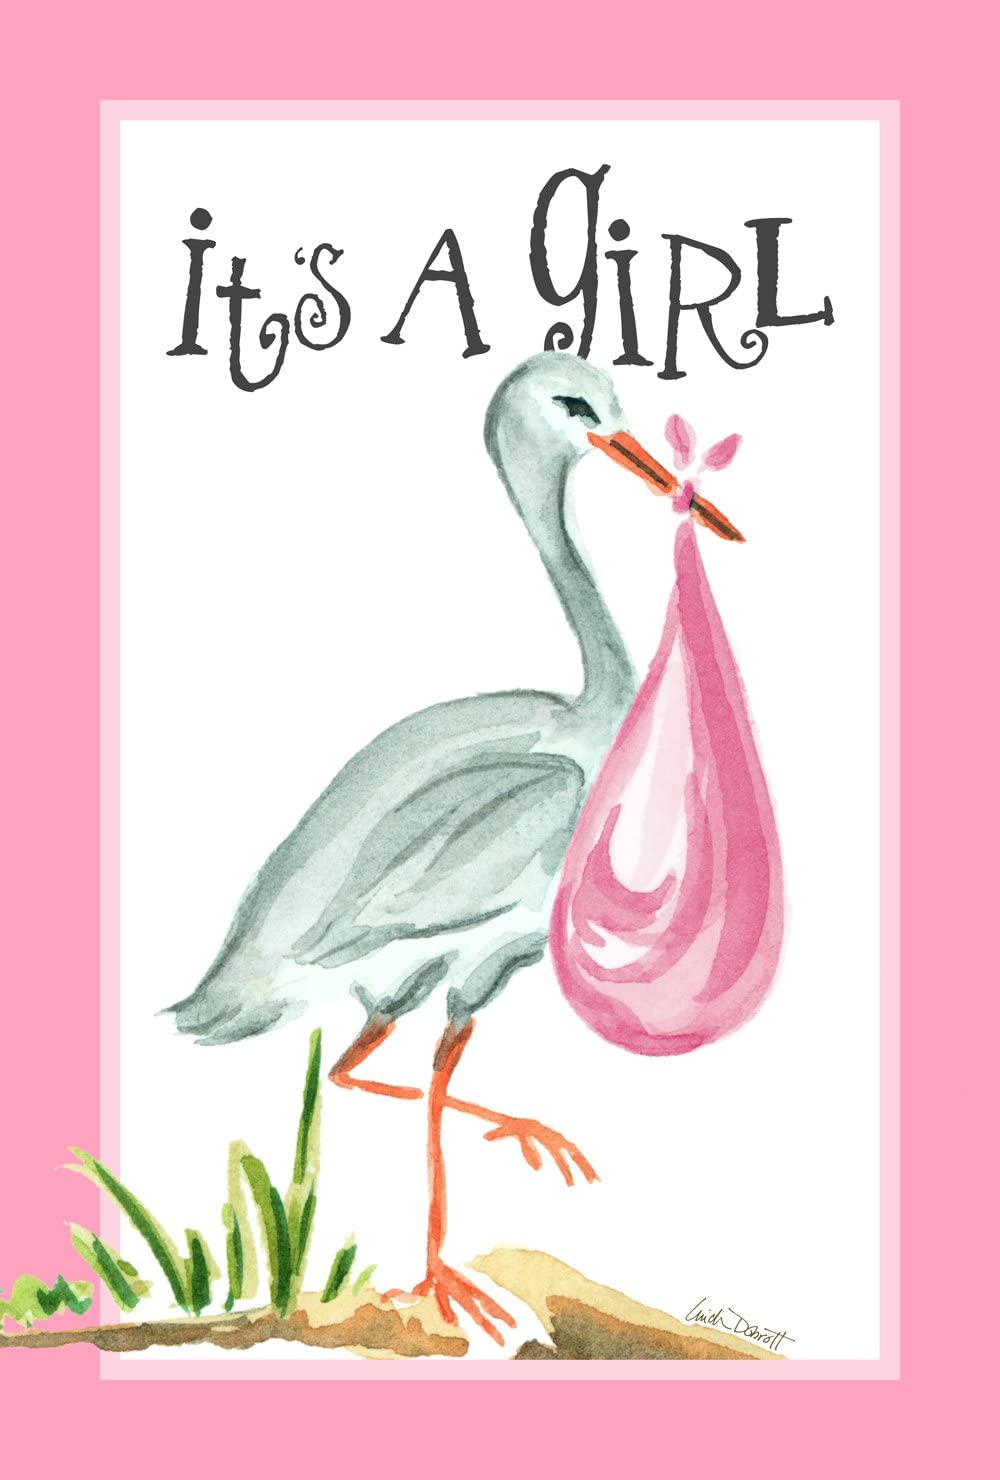 Toland Home Garden It's a Girl 12.5 x 18 Inch Decorative Cute New Baby Pink Stork Garden Flag